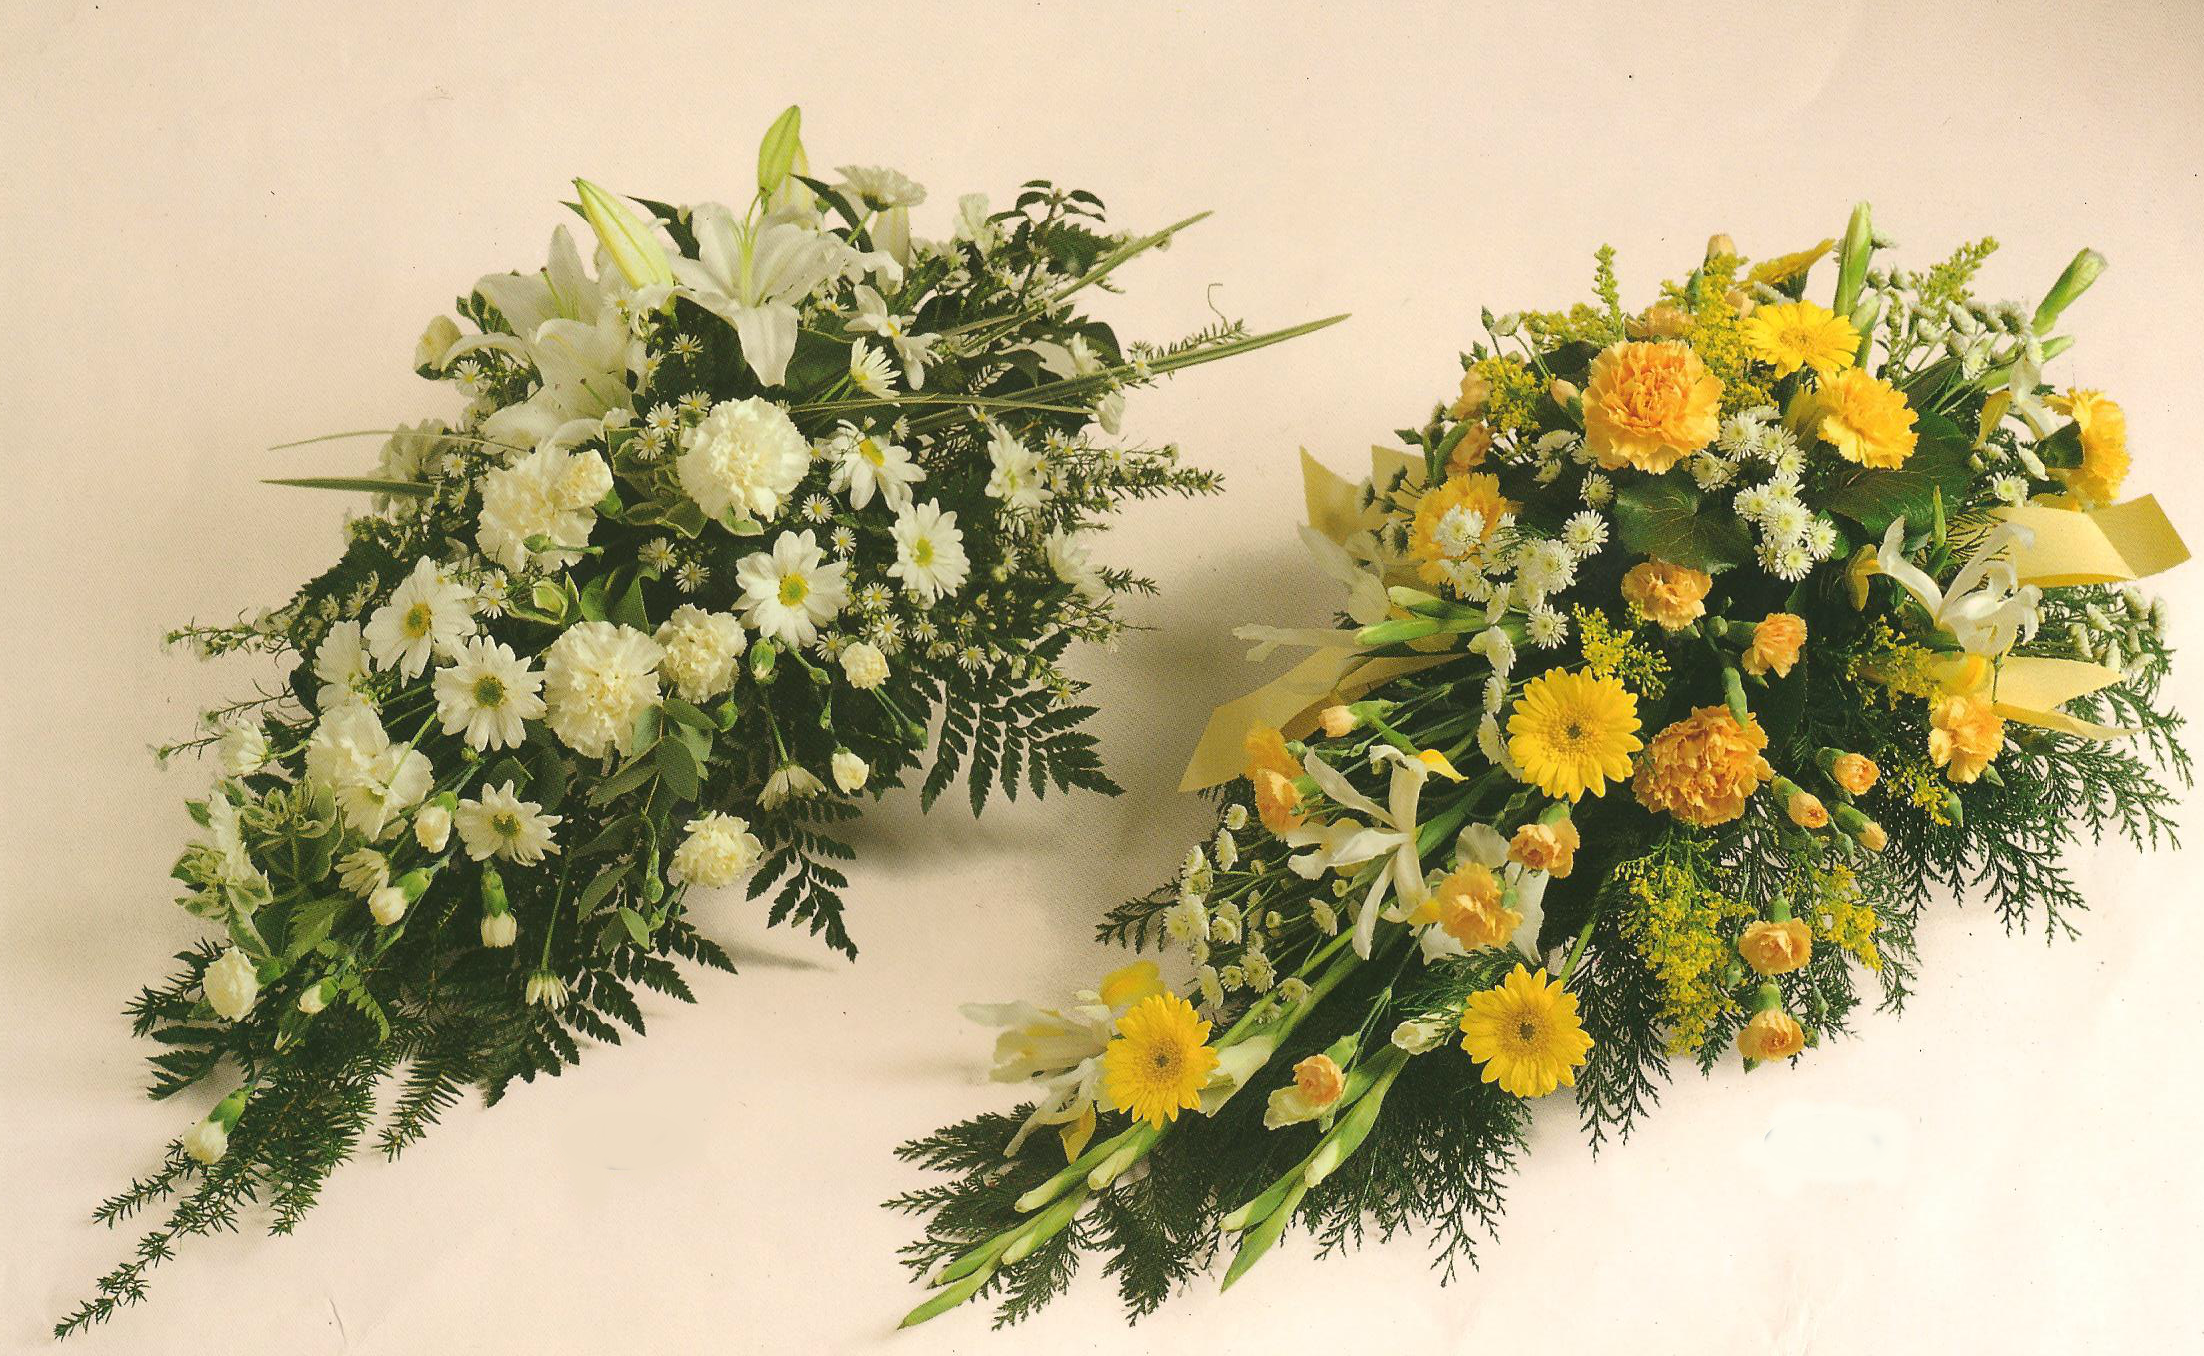 Cream and Yellow Single-Ended coffin sprays A17 A18. 2ft - £50, 3ft - £75